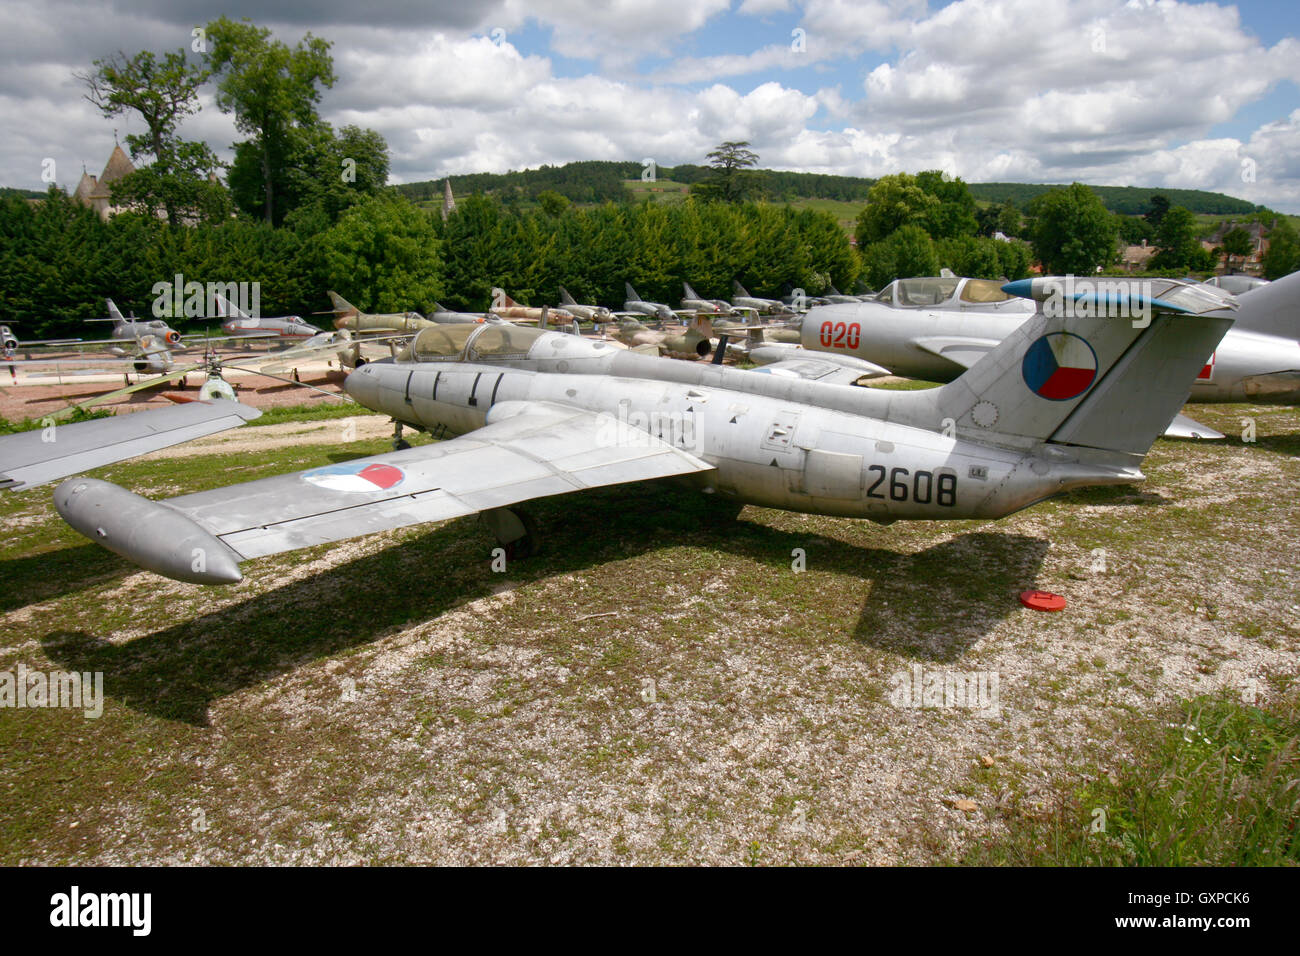 Czech Republic Air Force Aero L-29 Delfin on display at the Aviation museum at Chateau de Savigny-les-Beaune, France - Stock Image